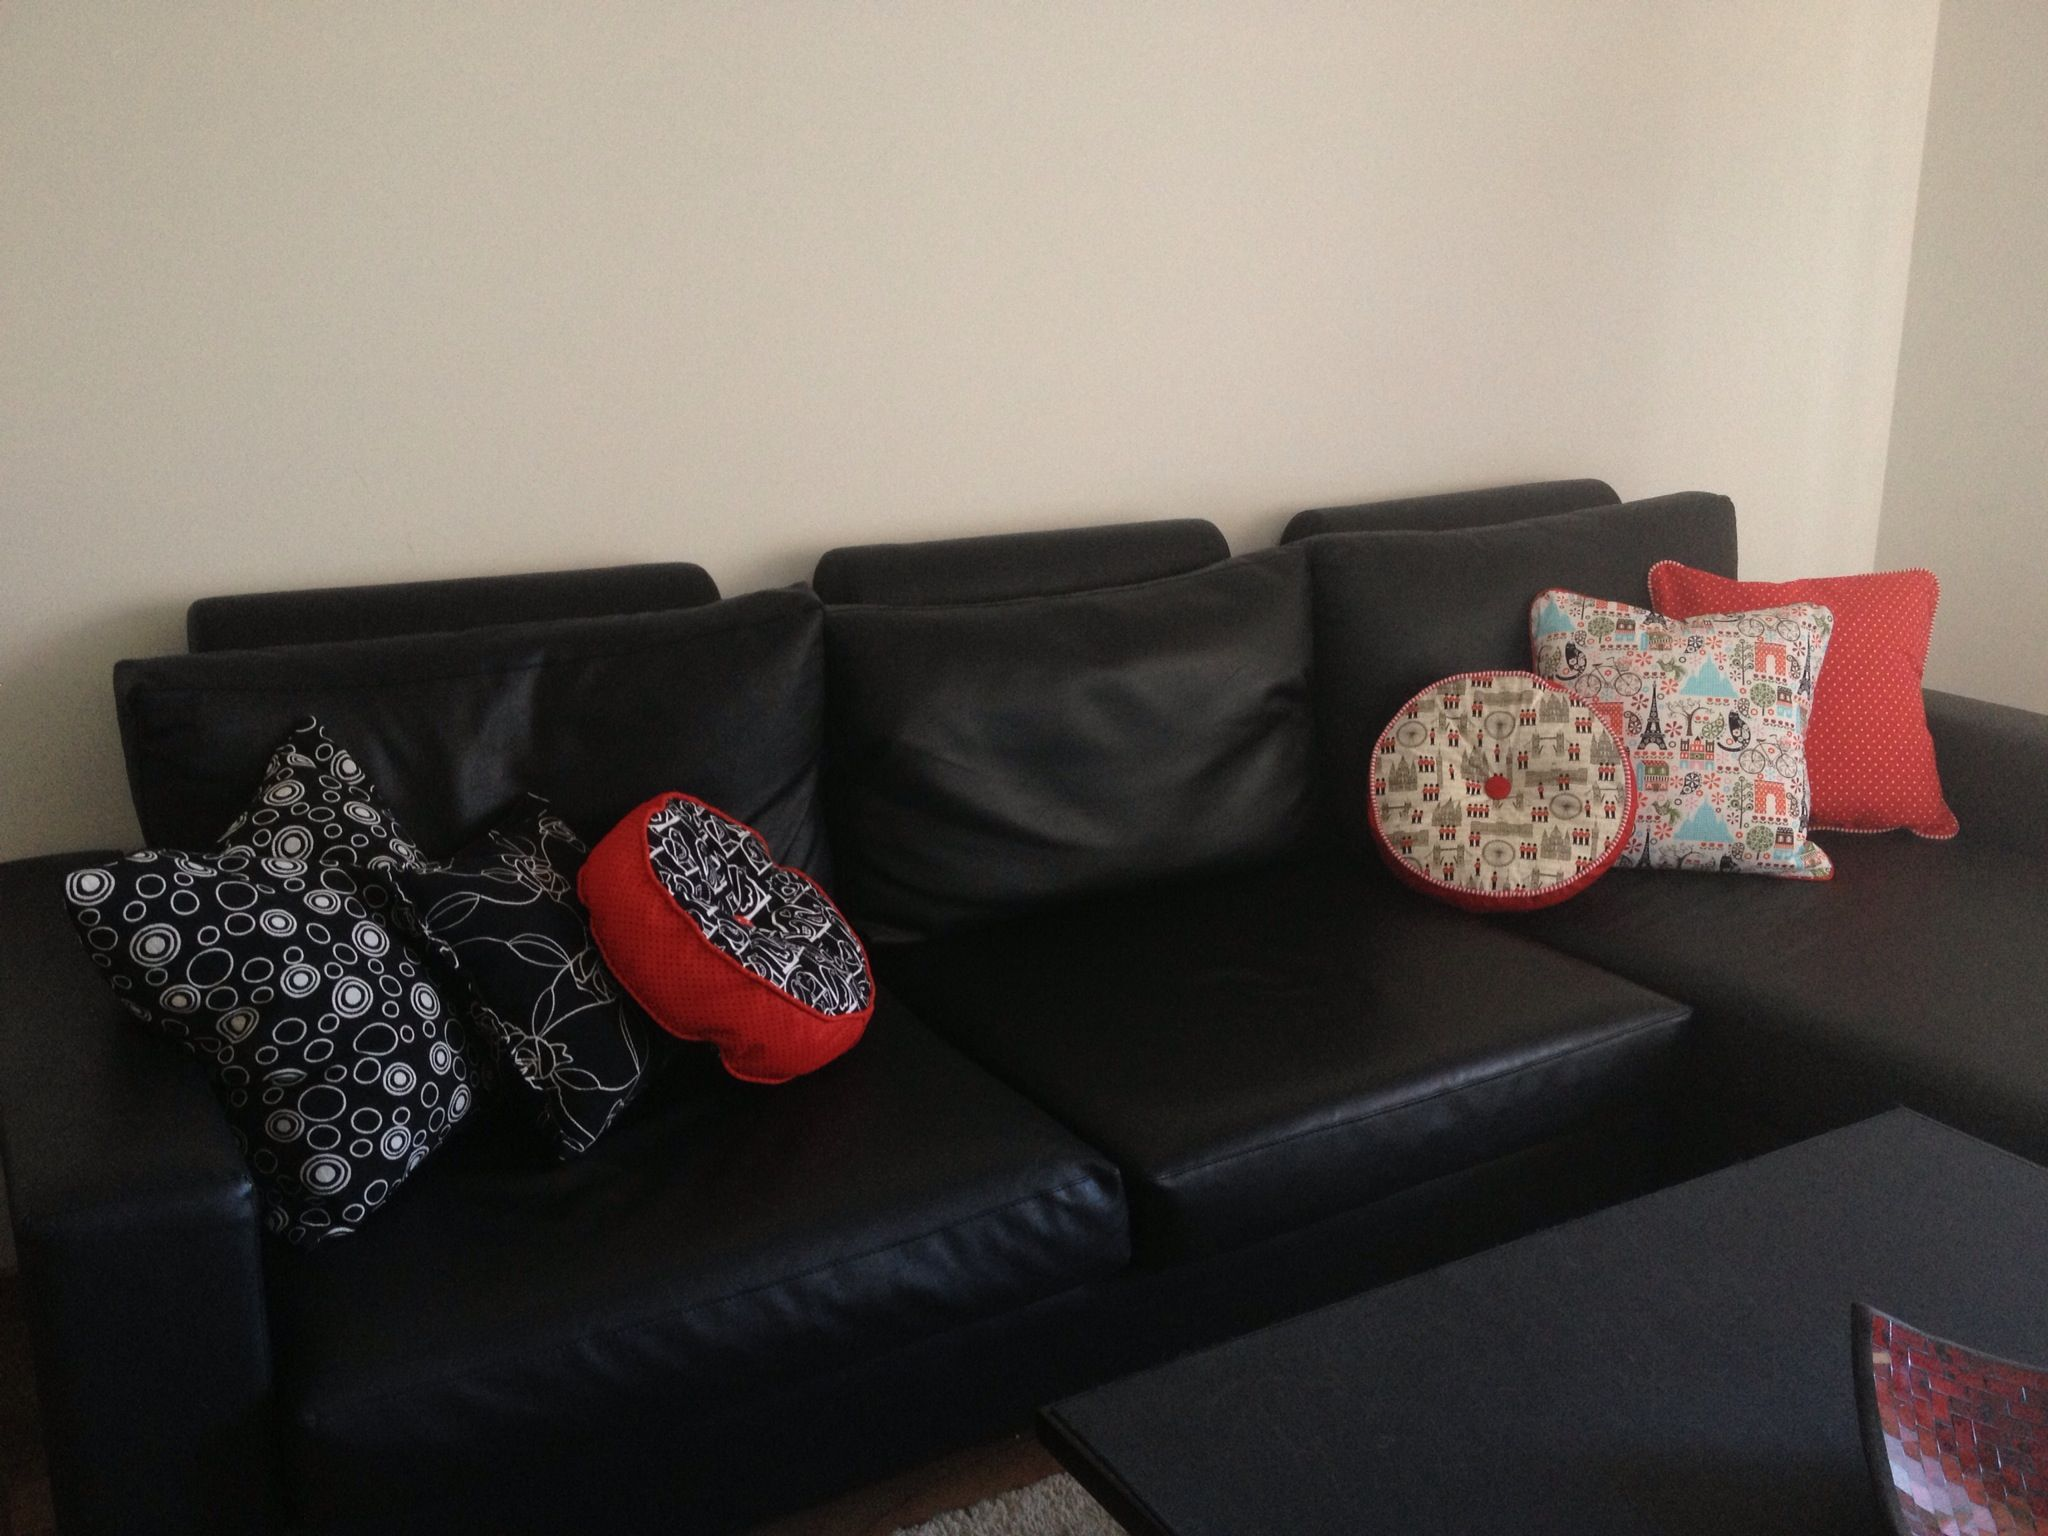 Mi sill n y almohadones sofa couch pillows black red - Decoracion blanco y negro ...